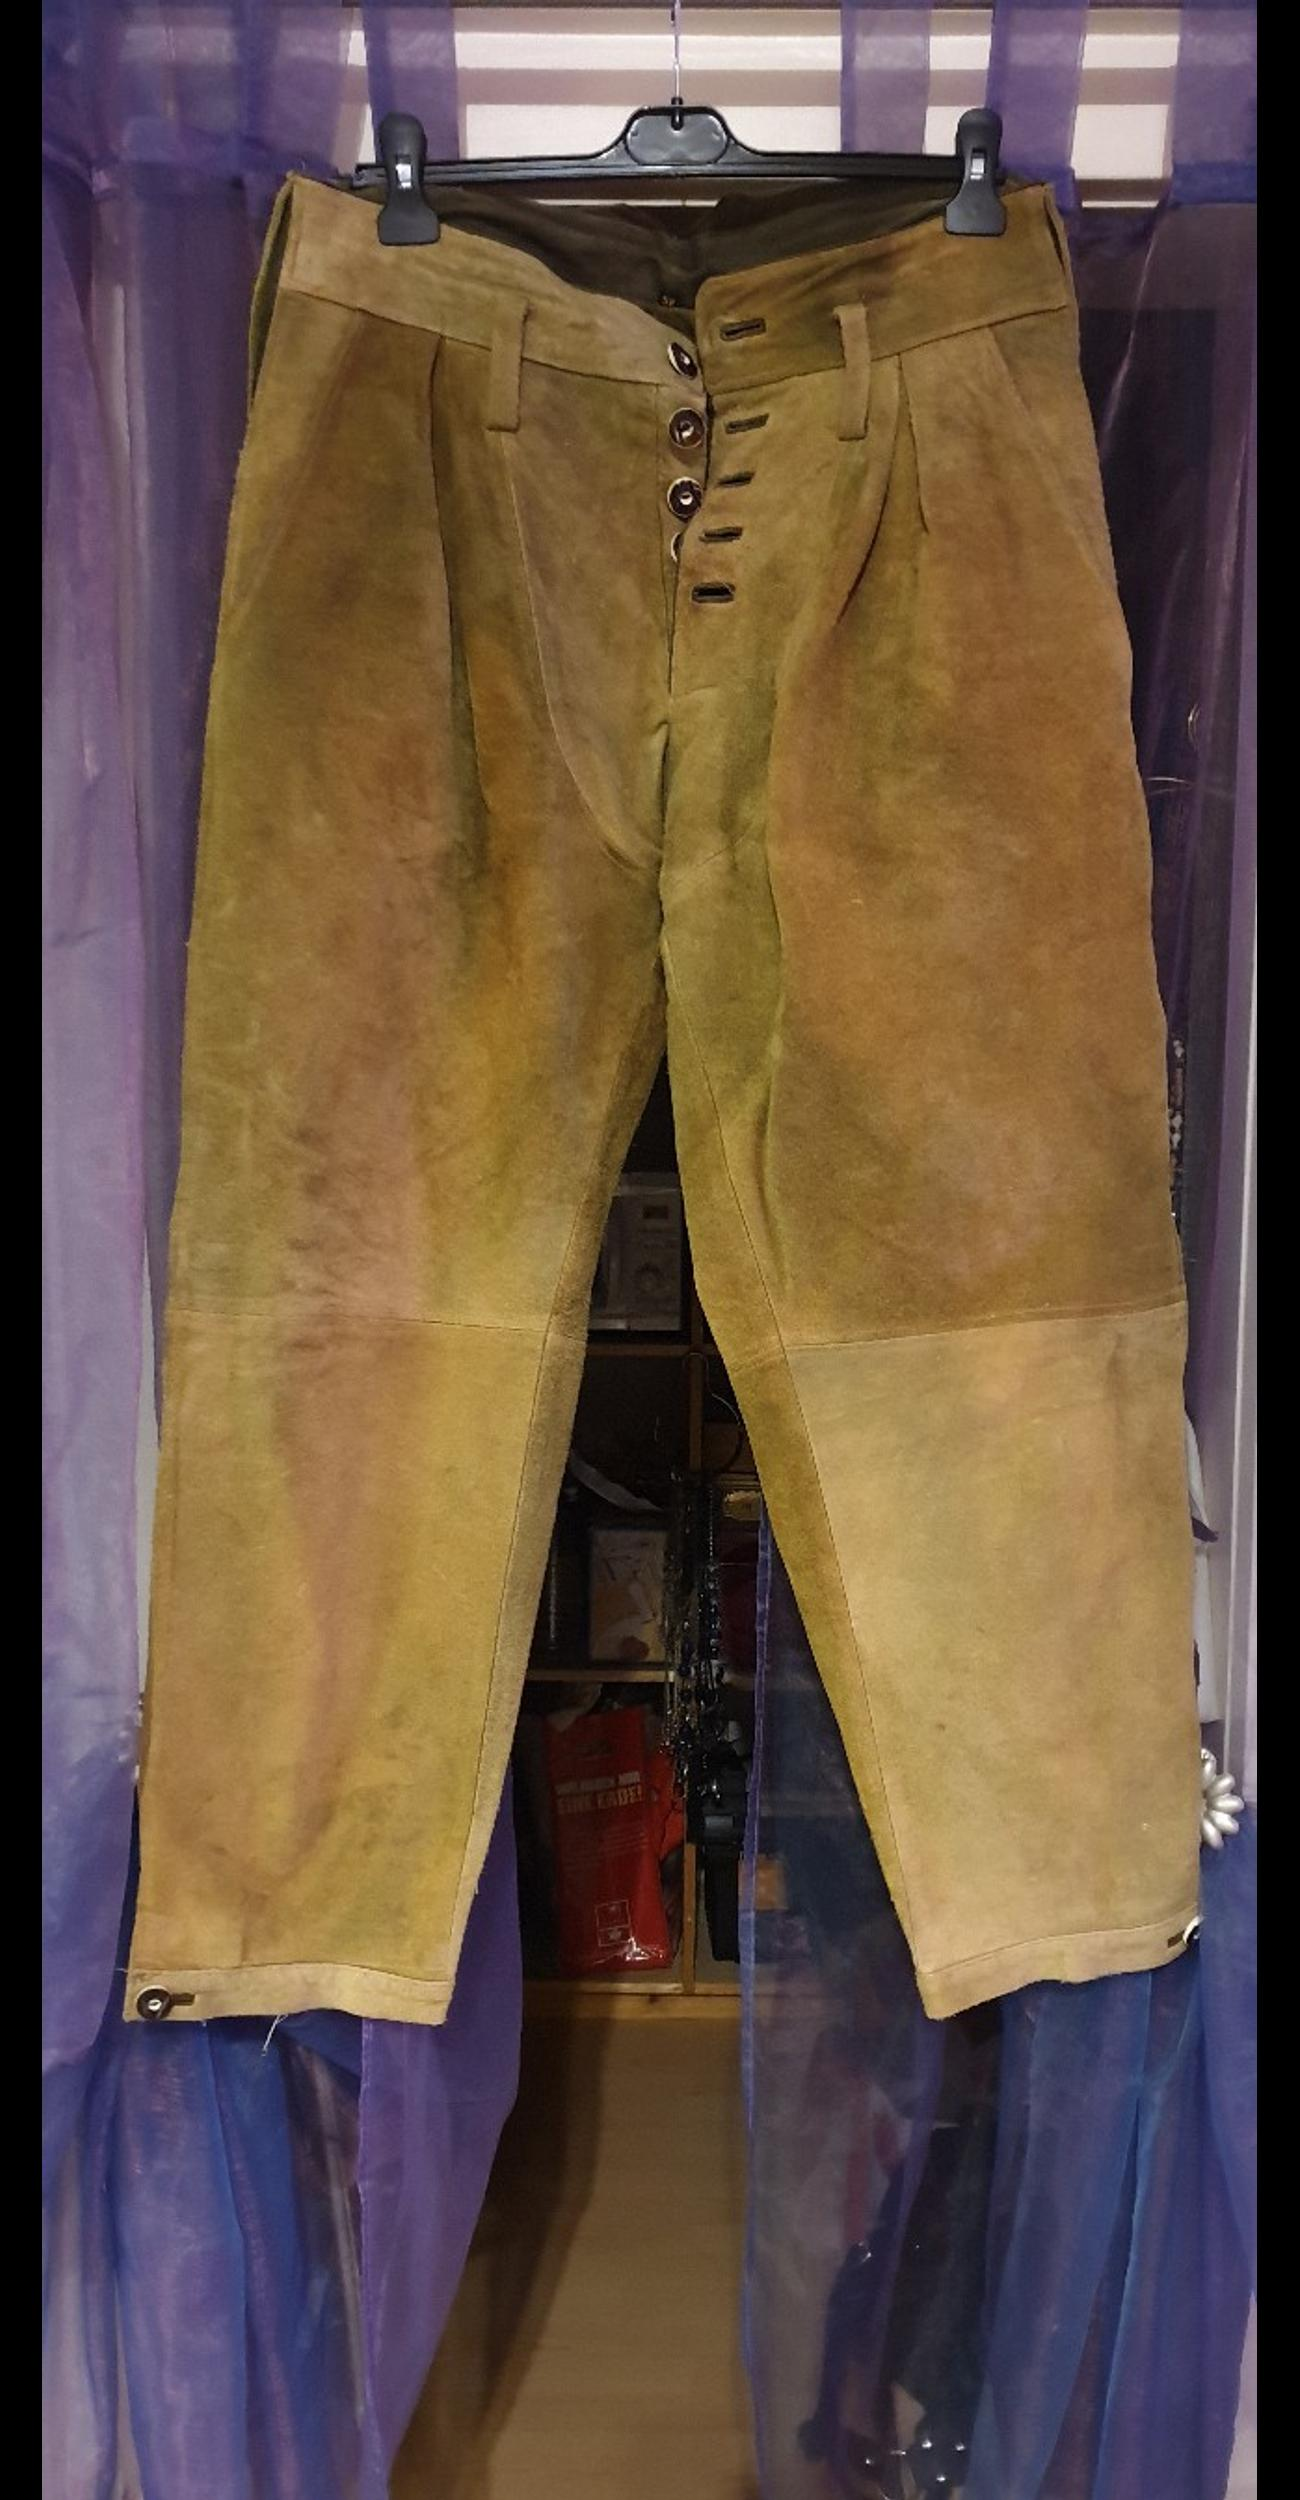 Trachtenhose In 81669 Munchen For 60 00 For Sale Shpock